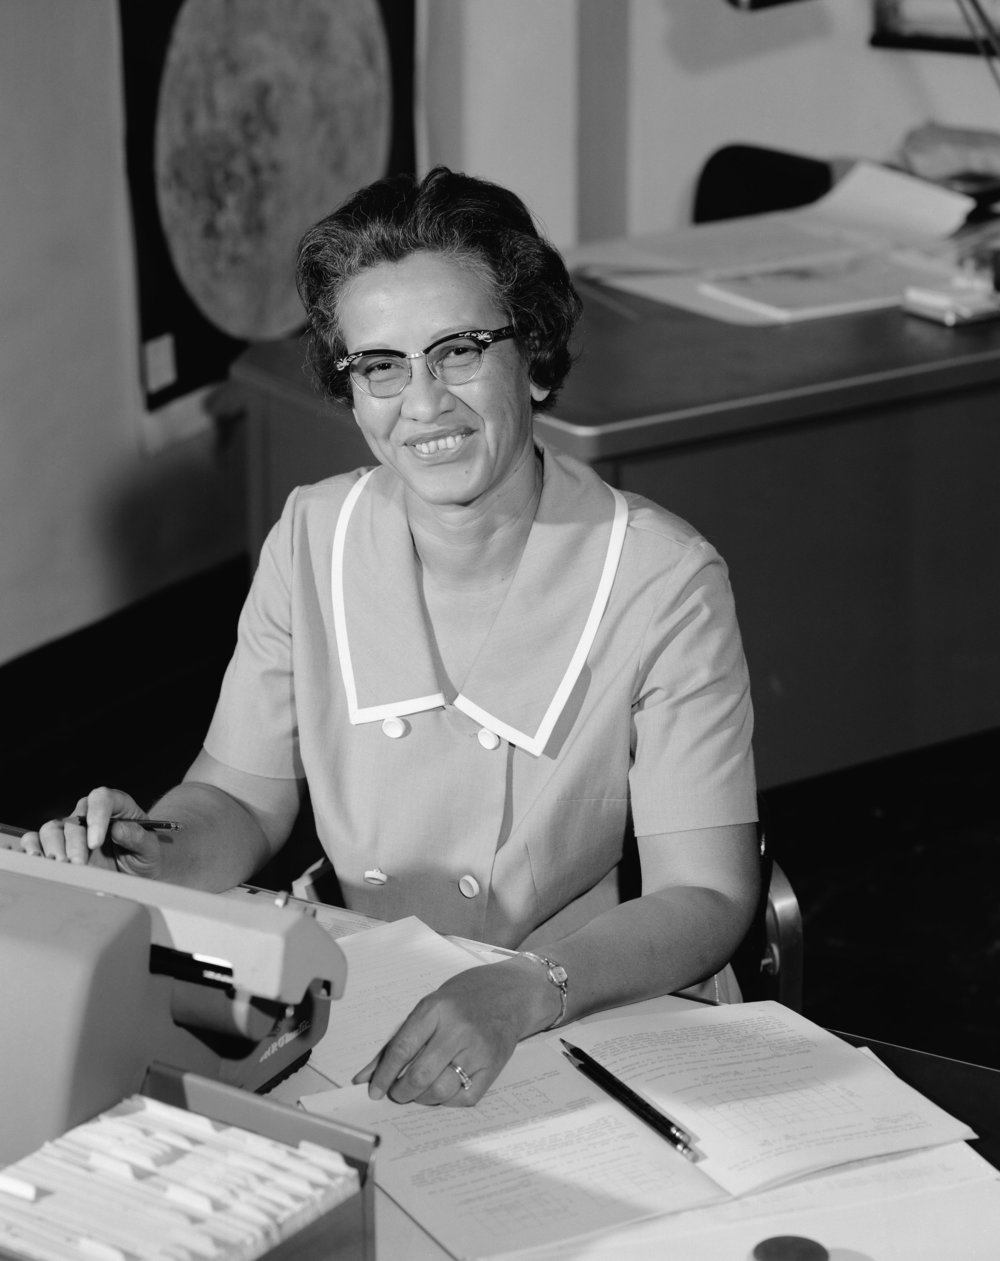 116 Katherine_Johnson_at_NASA,_in_1966.jpg